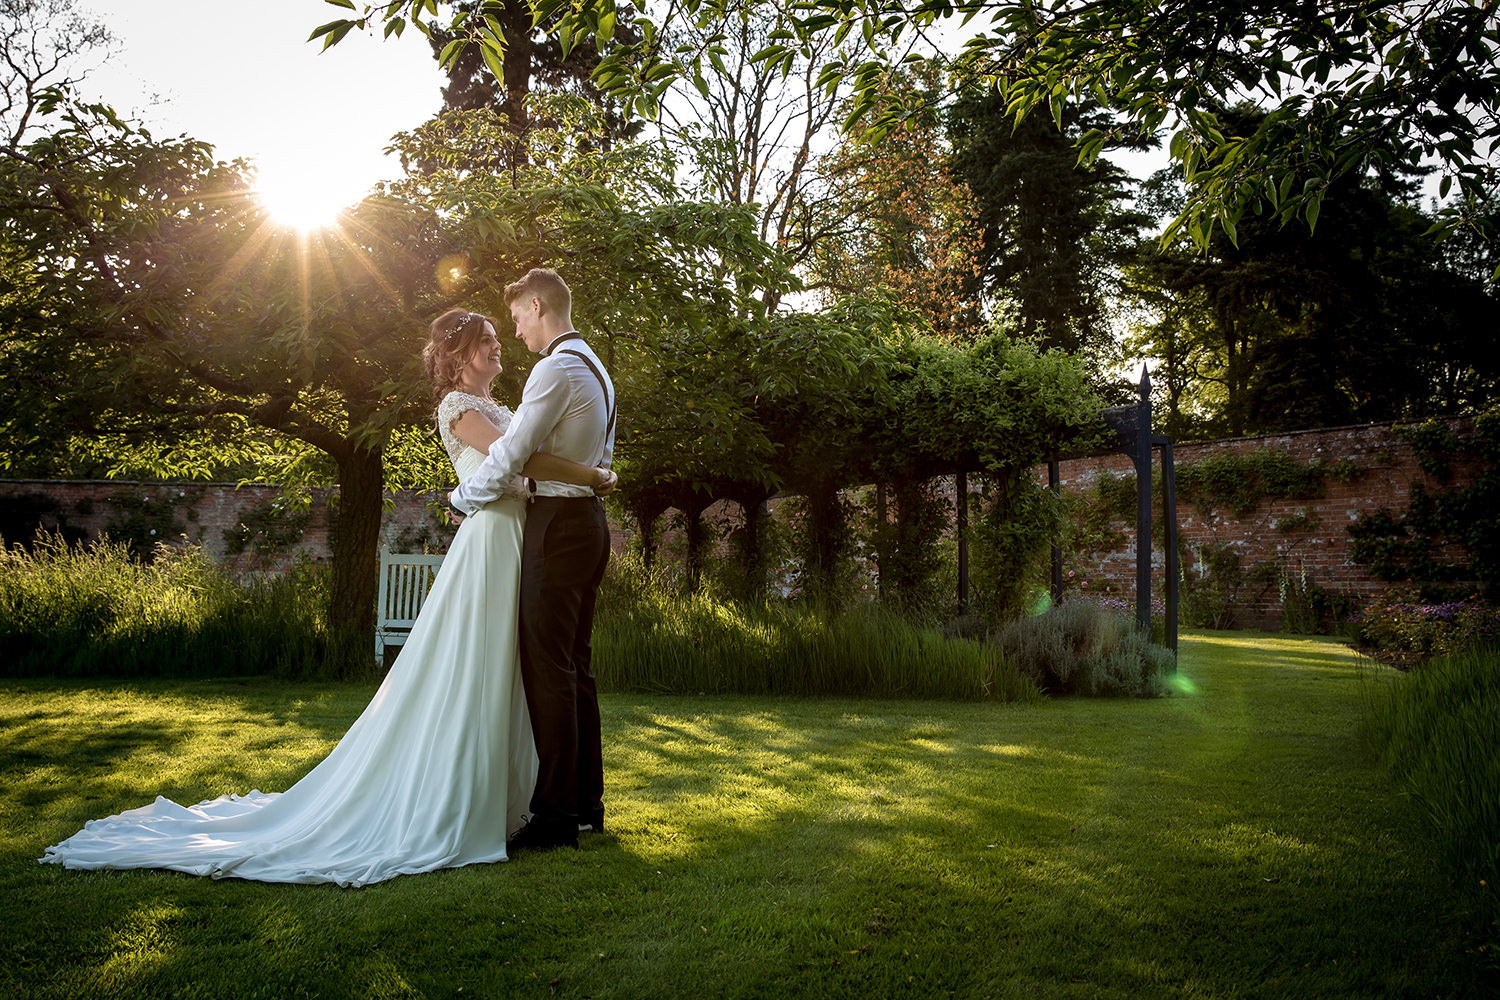 Wedding Photography at Combermere Abbey